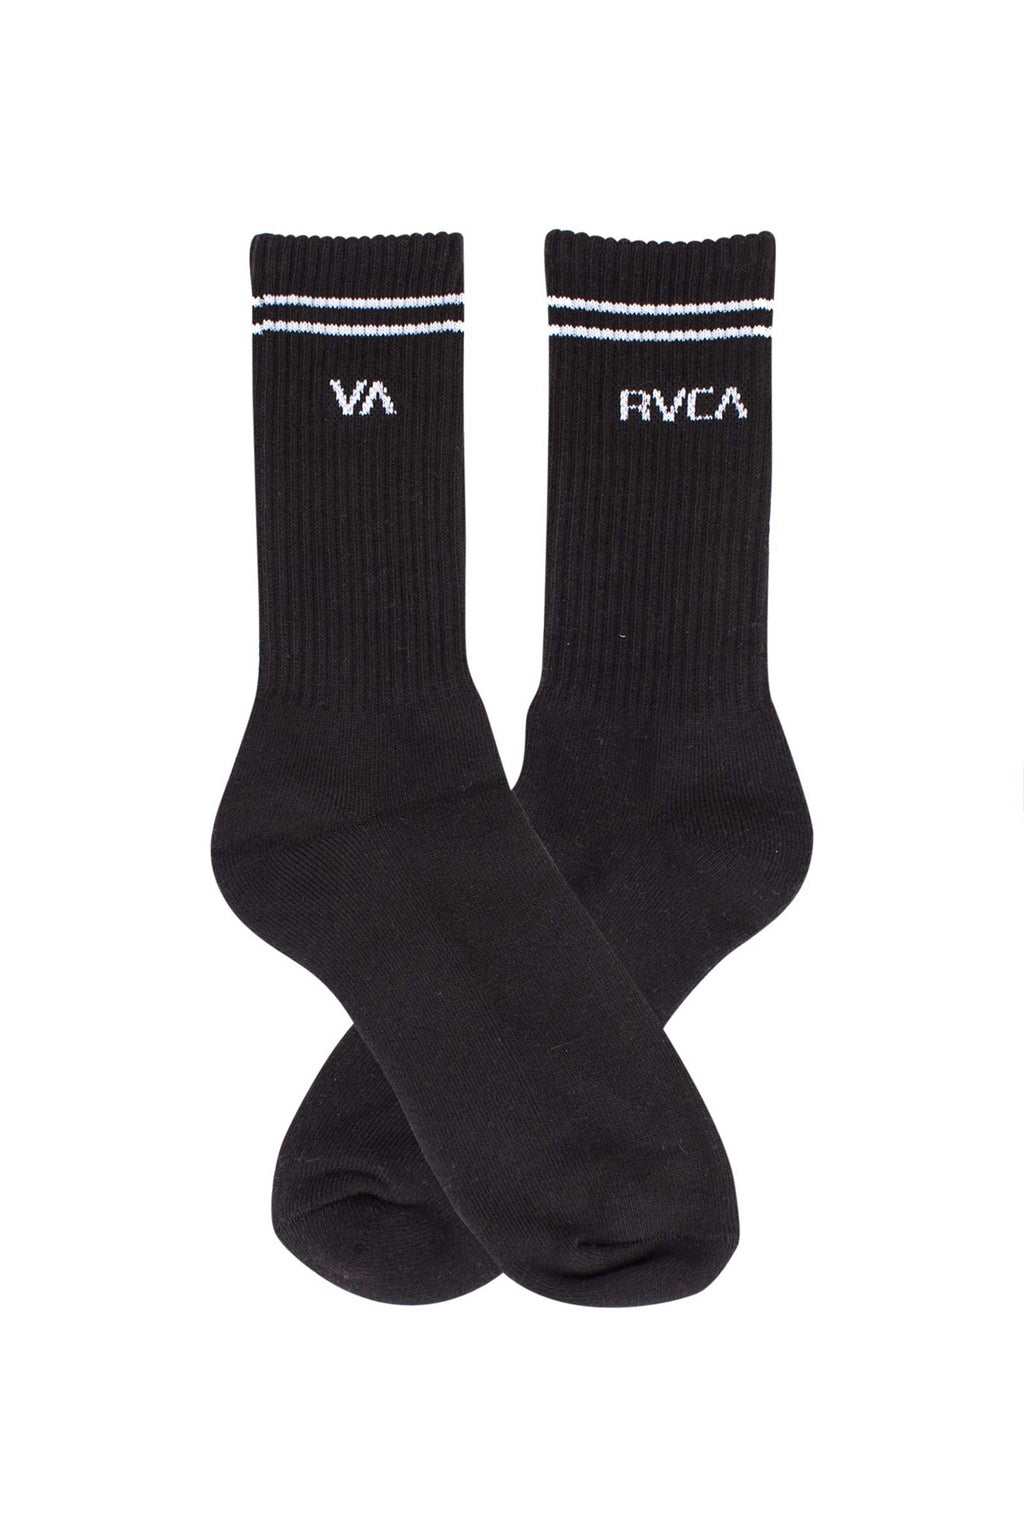 Union Sock III - 5 Pack - Black